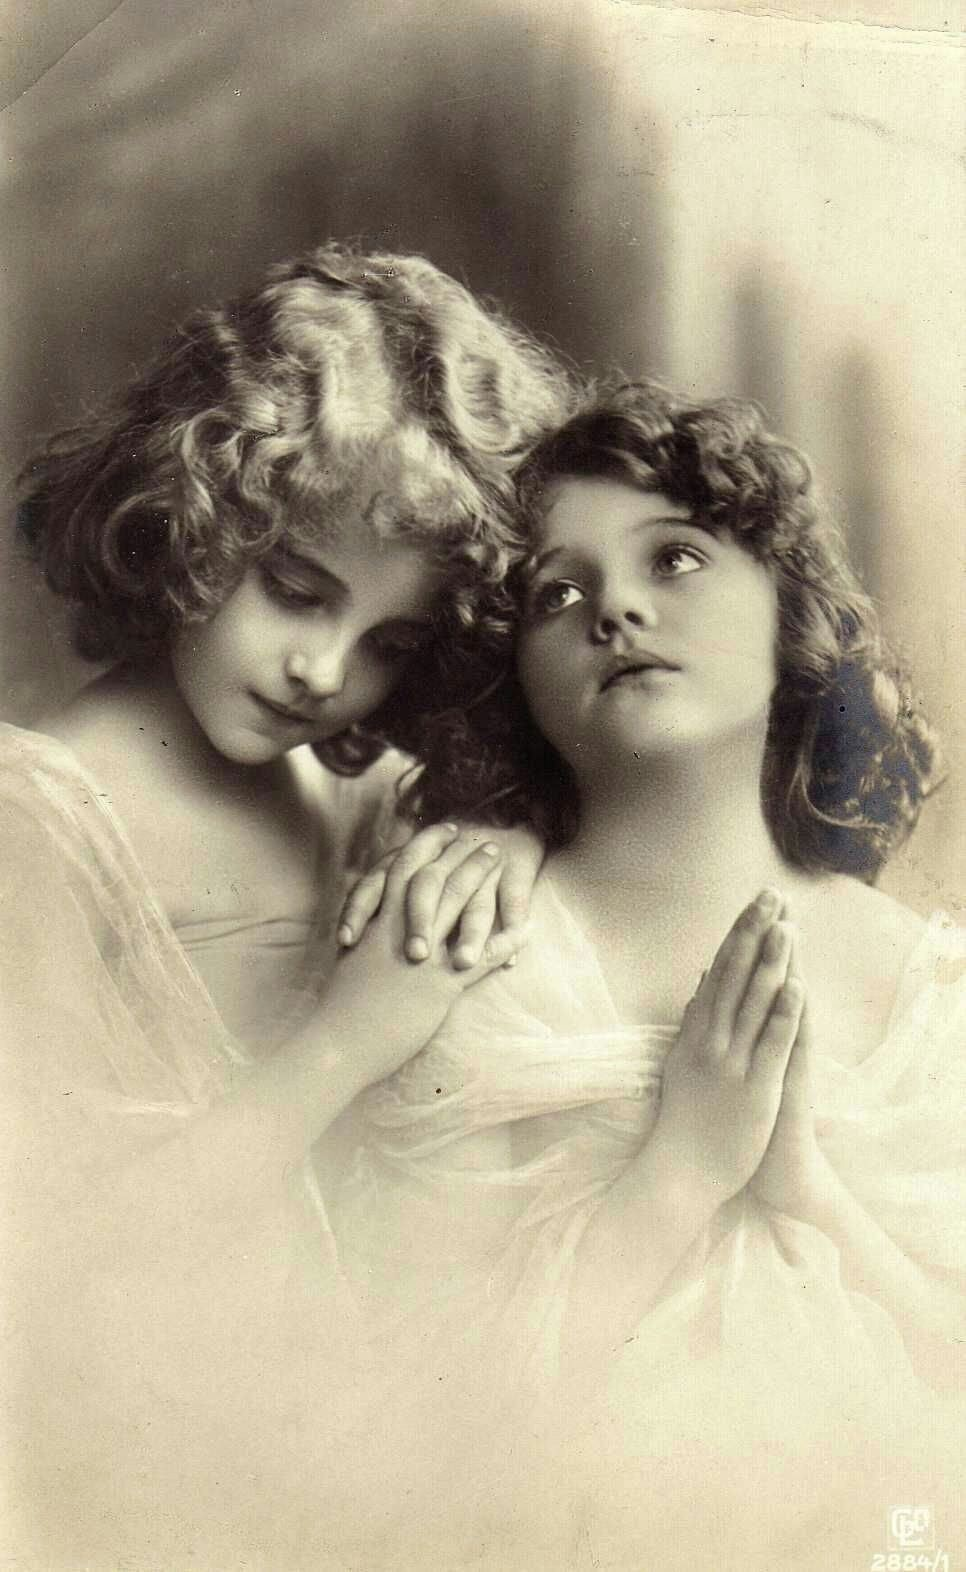 """Grete and Hanni Reinwald 1908"" The two adorable sisters that were famous models on photo postcards from 1906 to 1914. The family was from Germany. Grete was born on May 26, 1902; her sister Hanni on August 24, 1903. Both sisters later became famous Silent Movie stars in Germany. - Abbie Stewart - Photographer unknown"